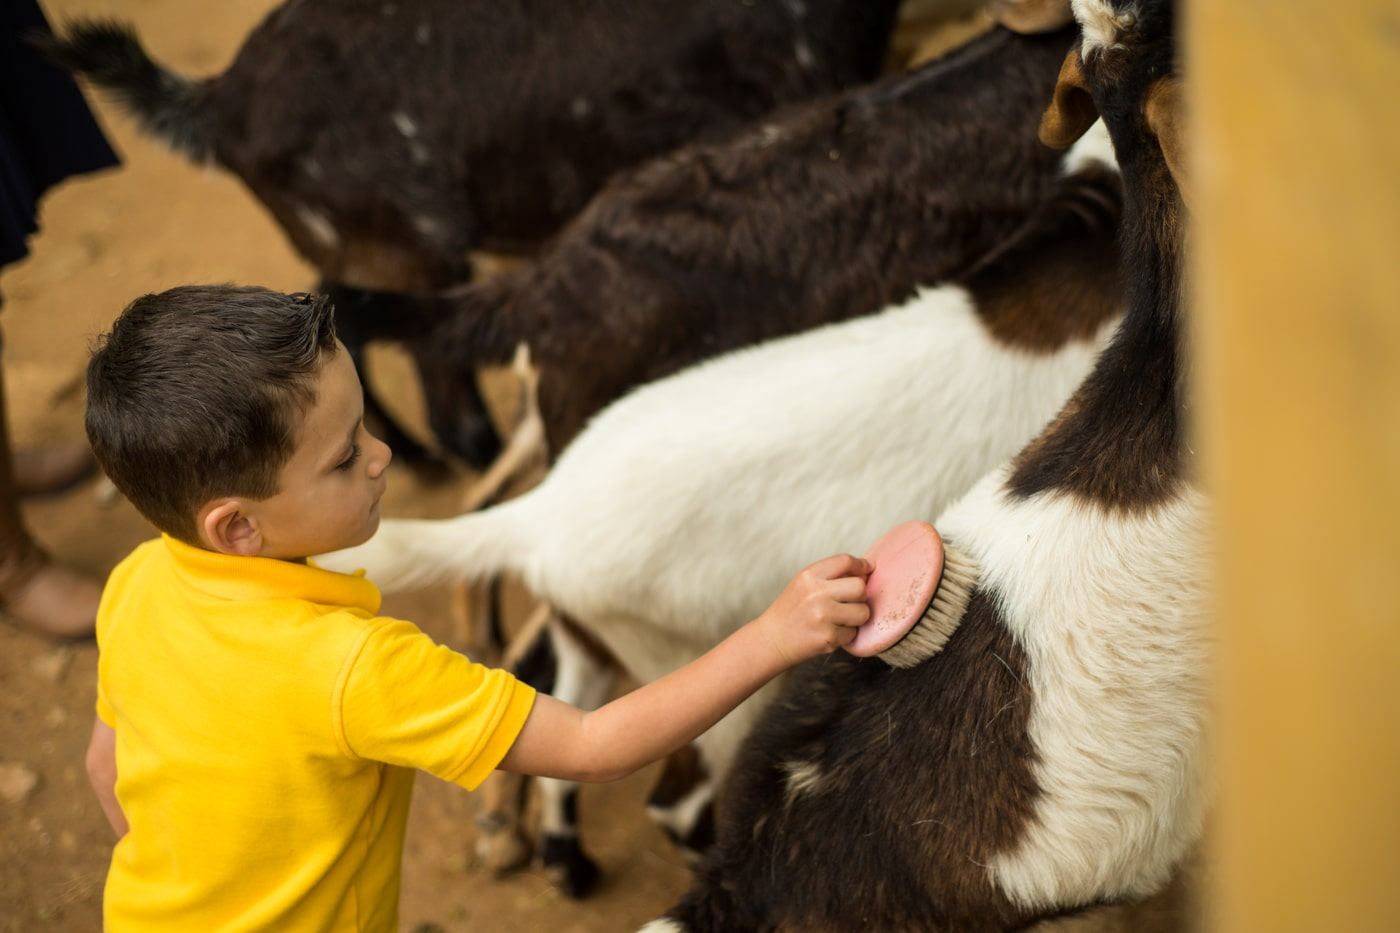 boy brushes cow during GA portrait session